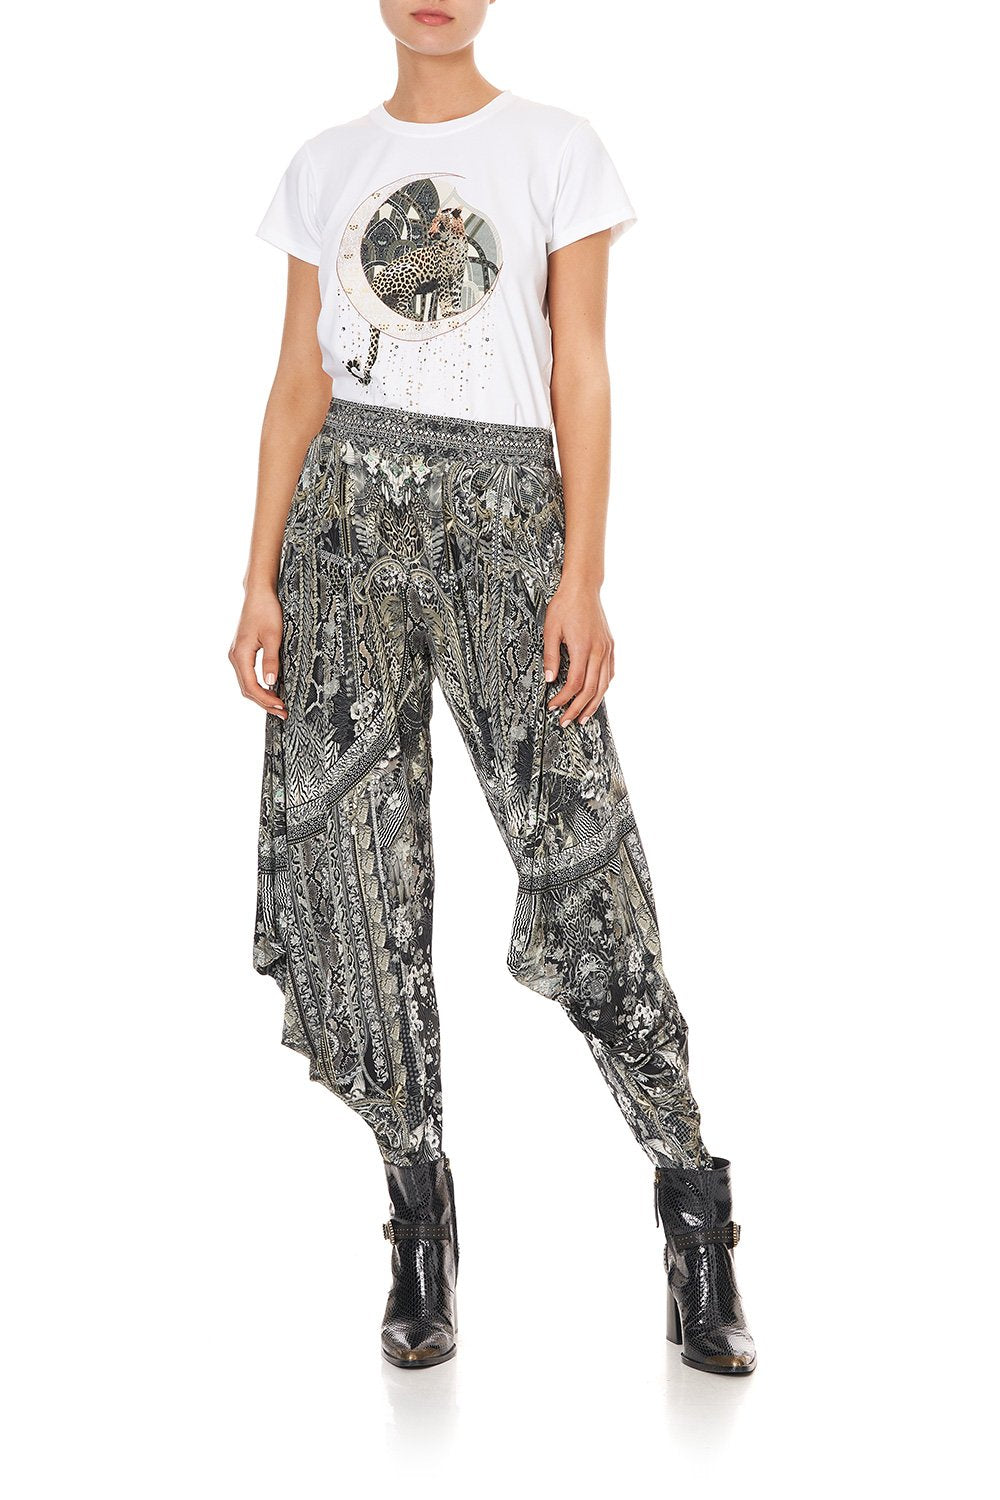 JERSEY DRAPE PANT WITH POCKET ONE TRIBE